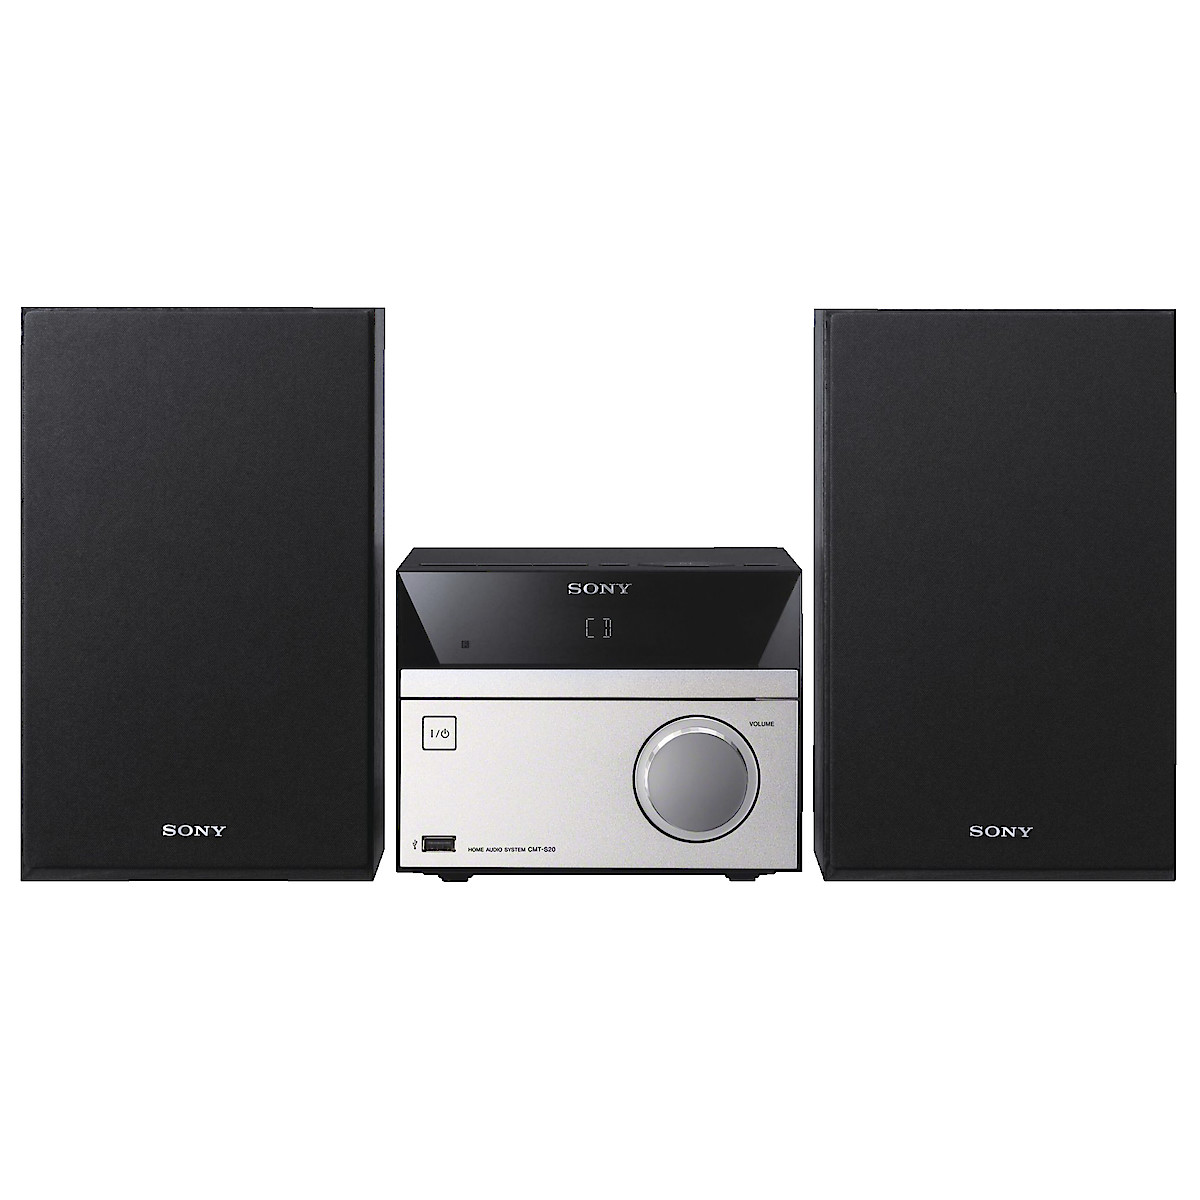 Sony CMTS 20B Stereo System with DAB